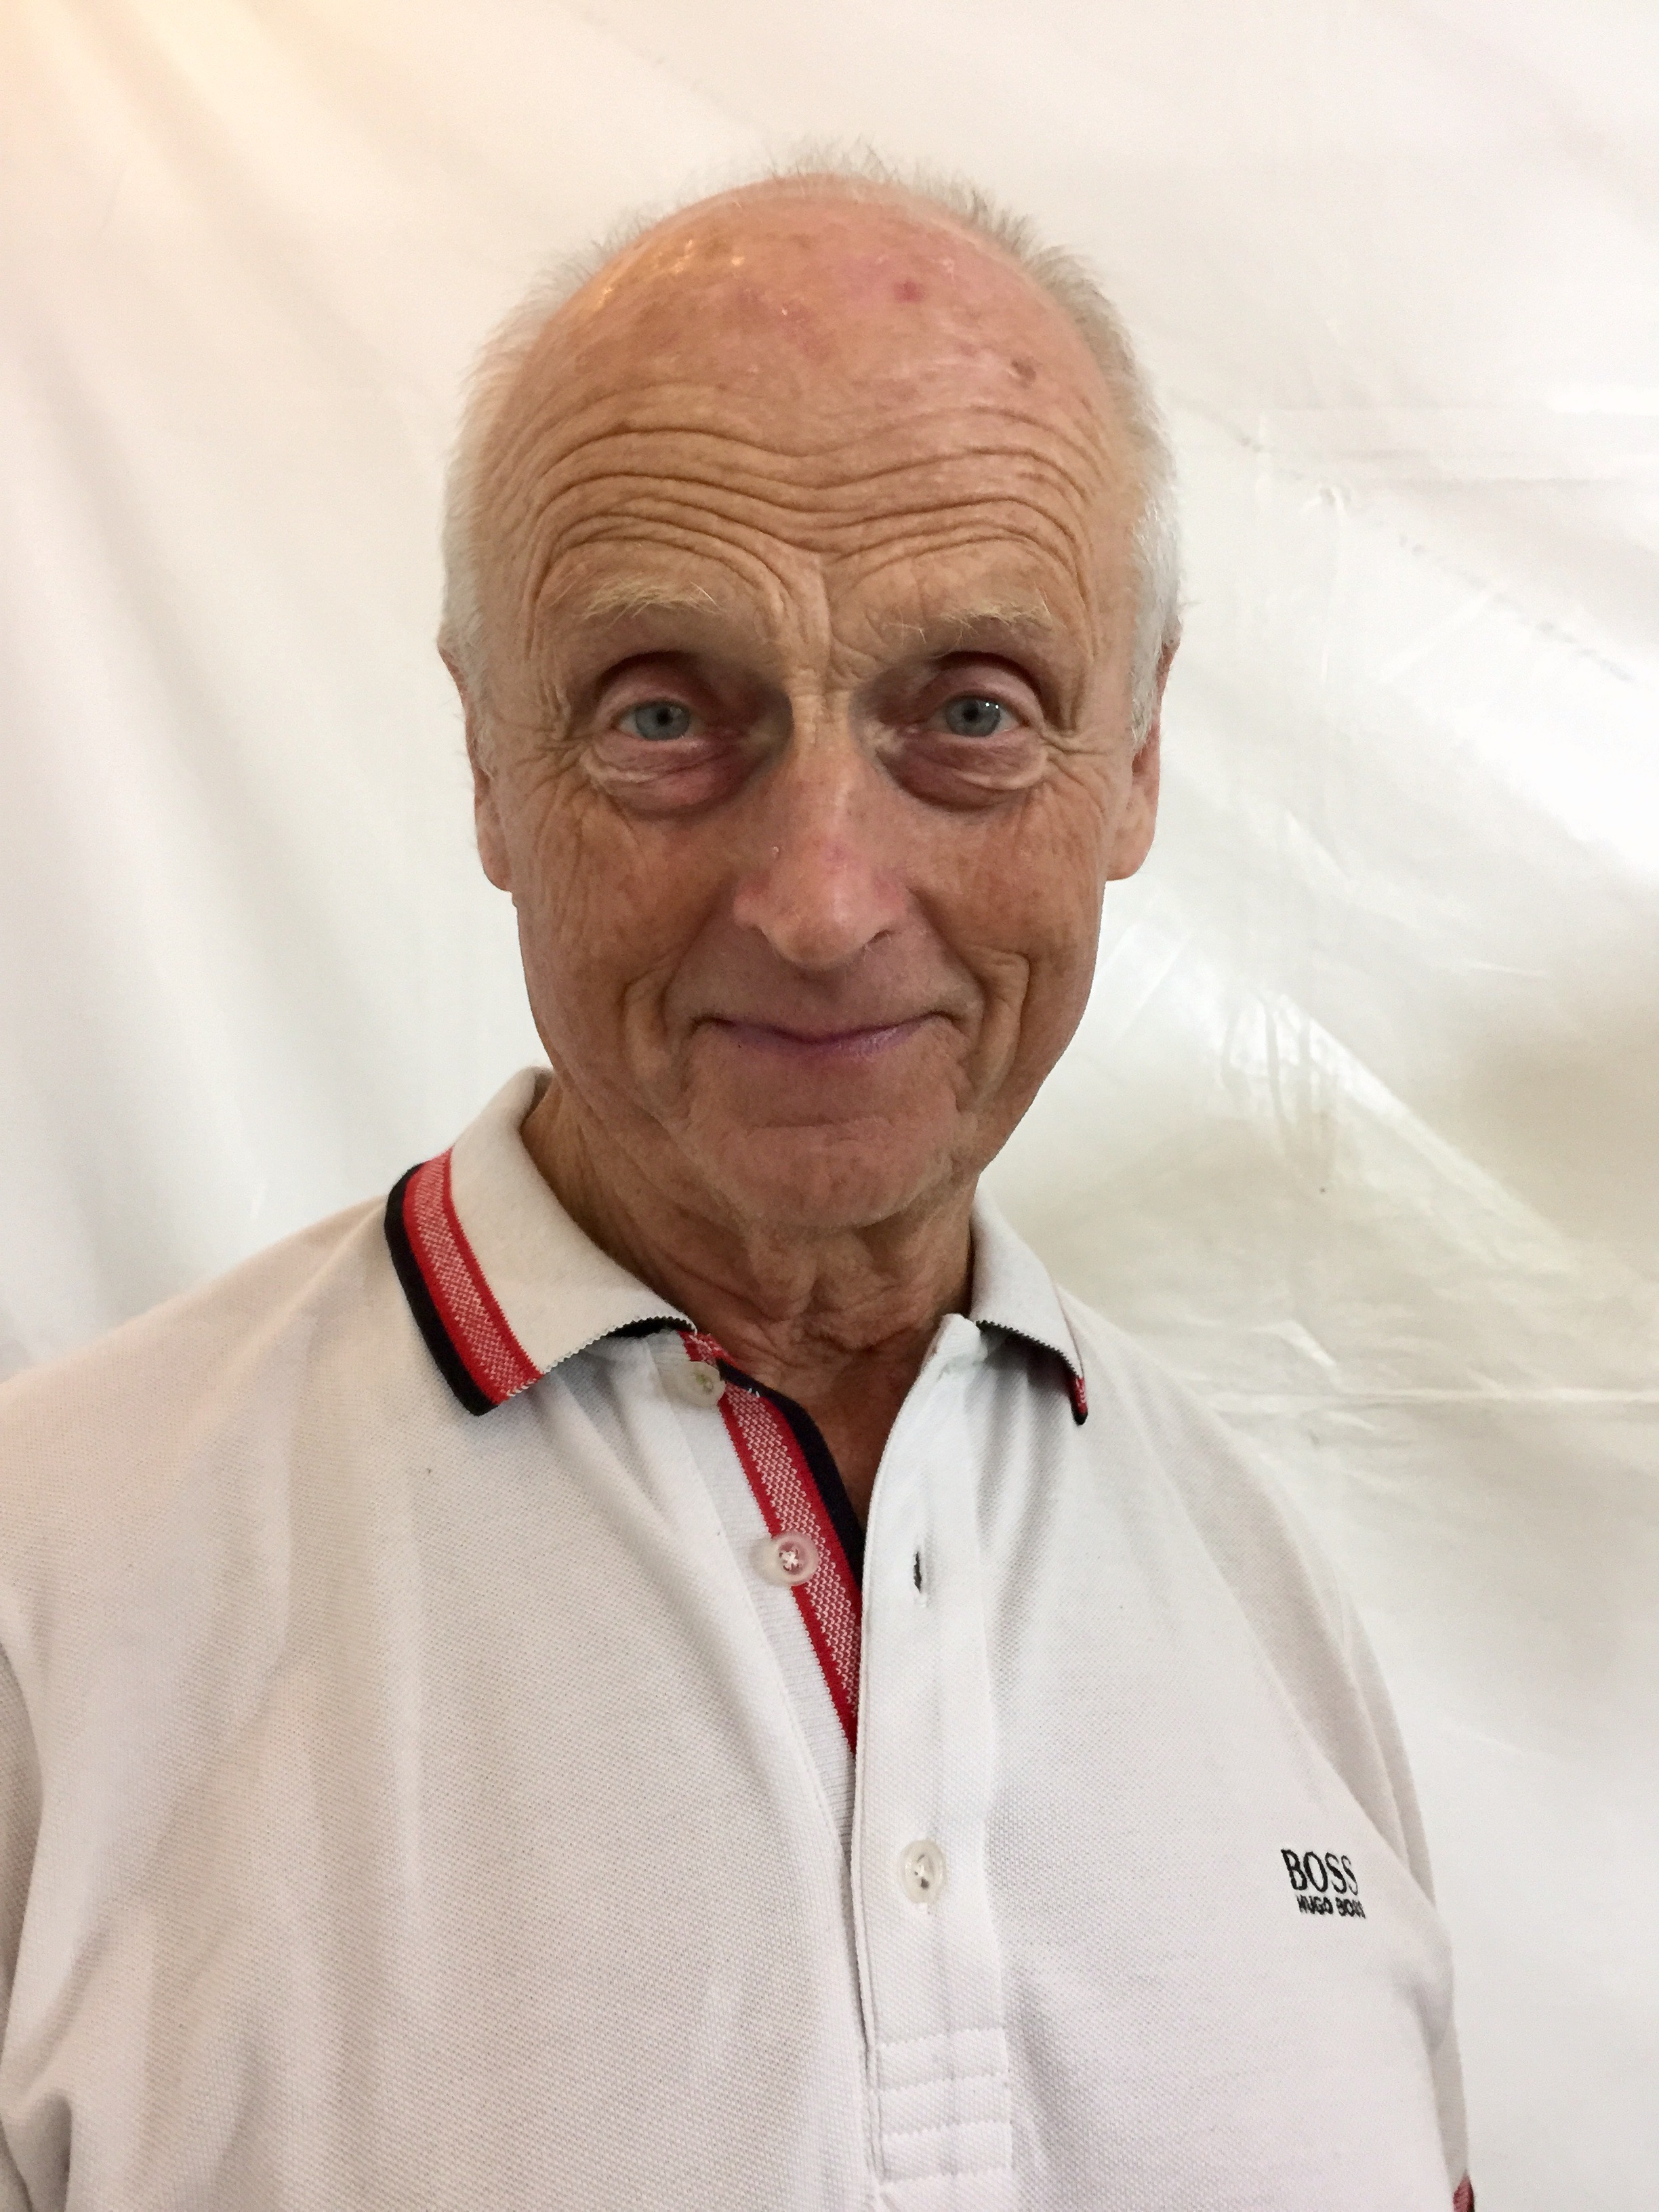 Roger Allsopp. 75 years old and has swam across the English Channel - twice!